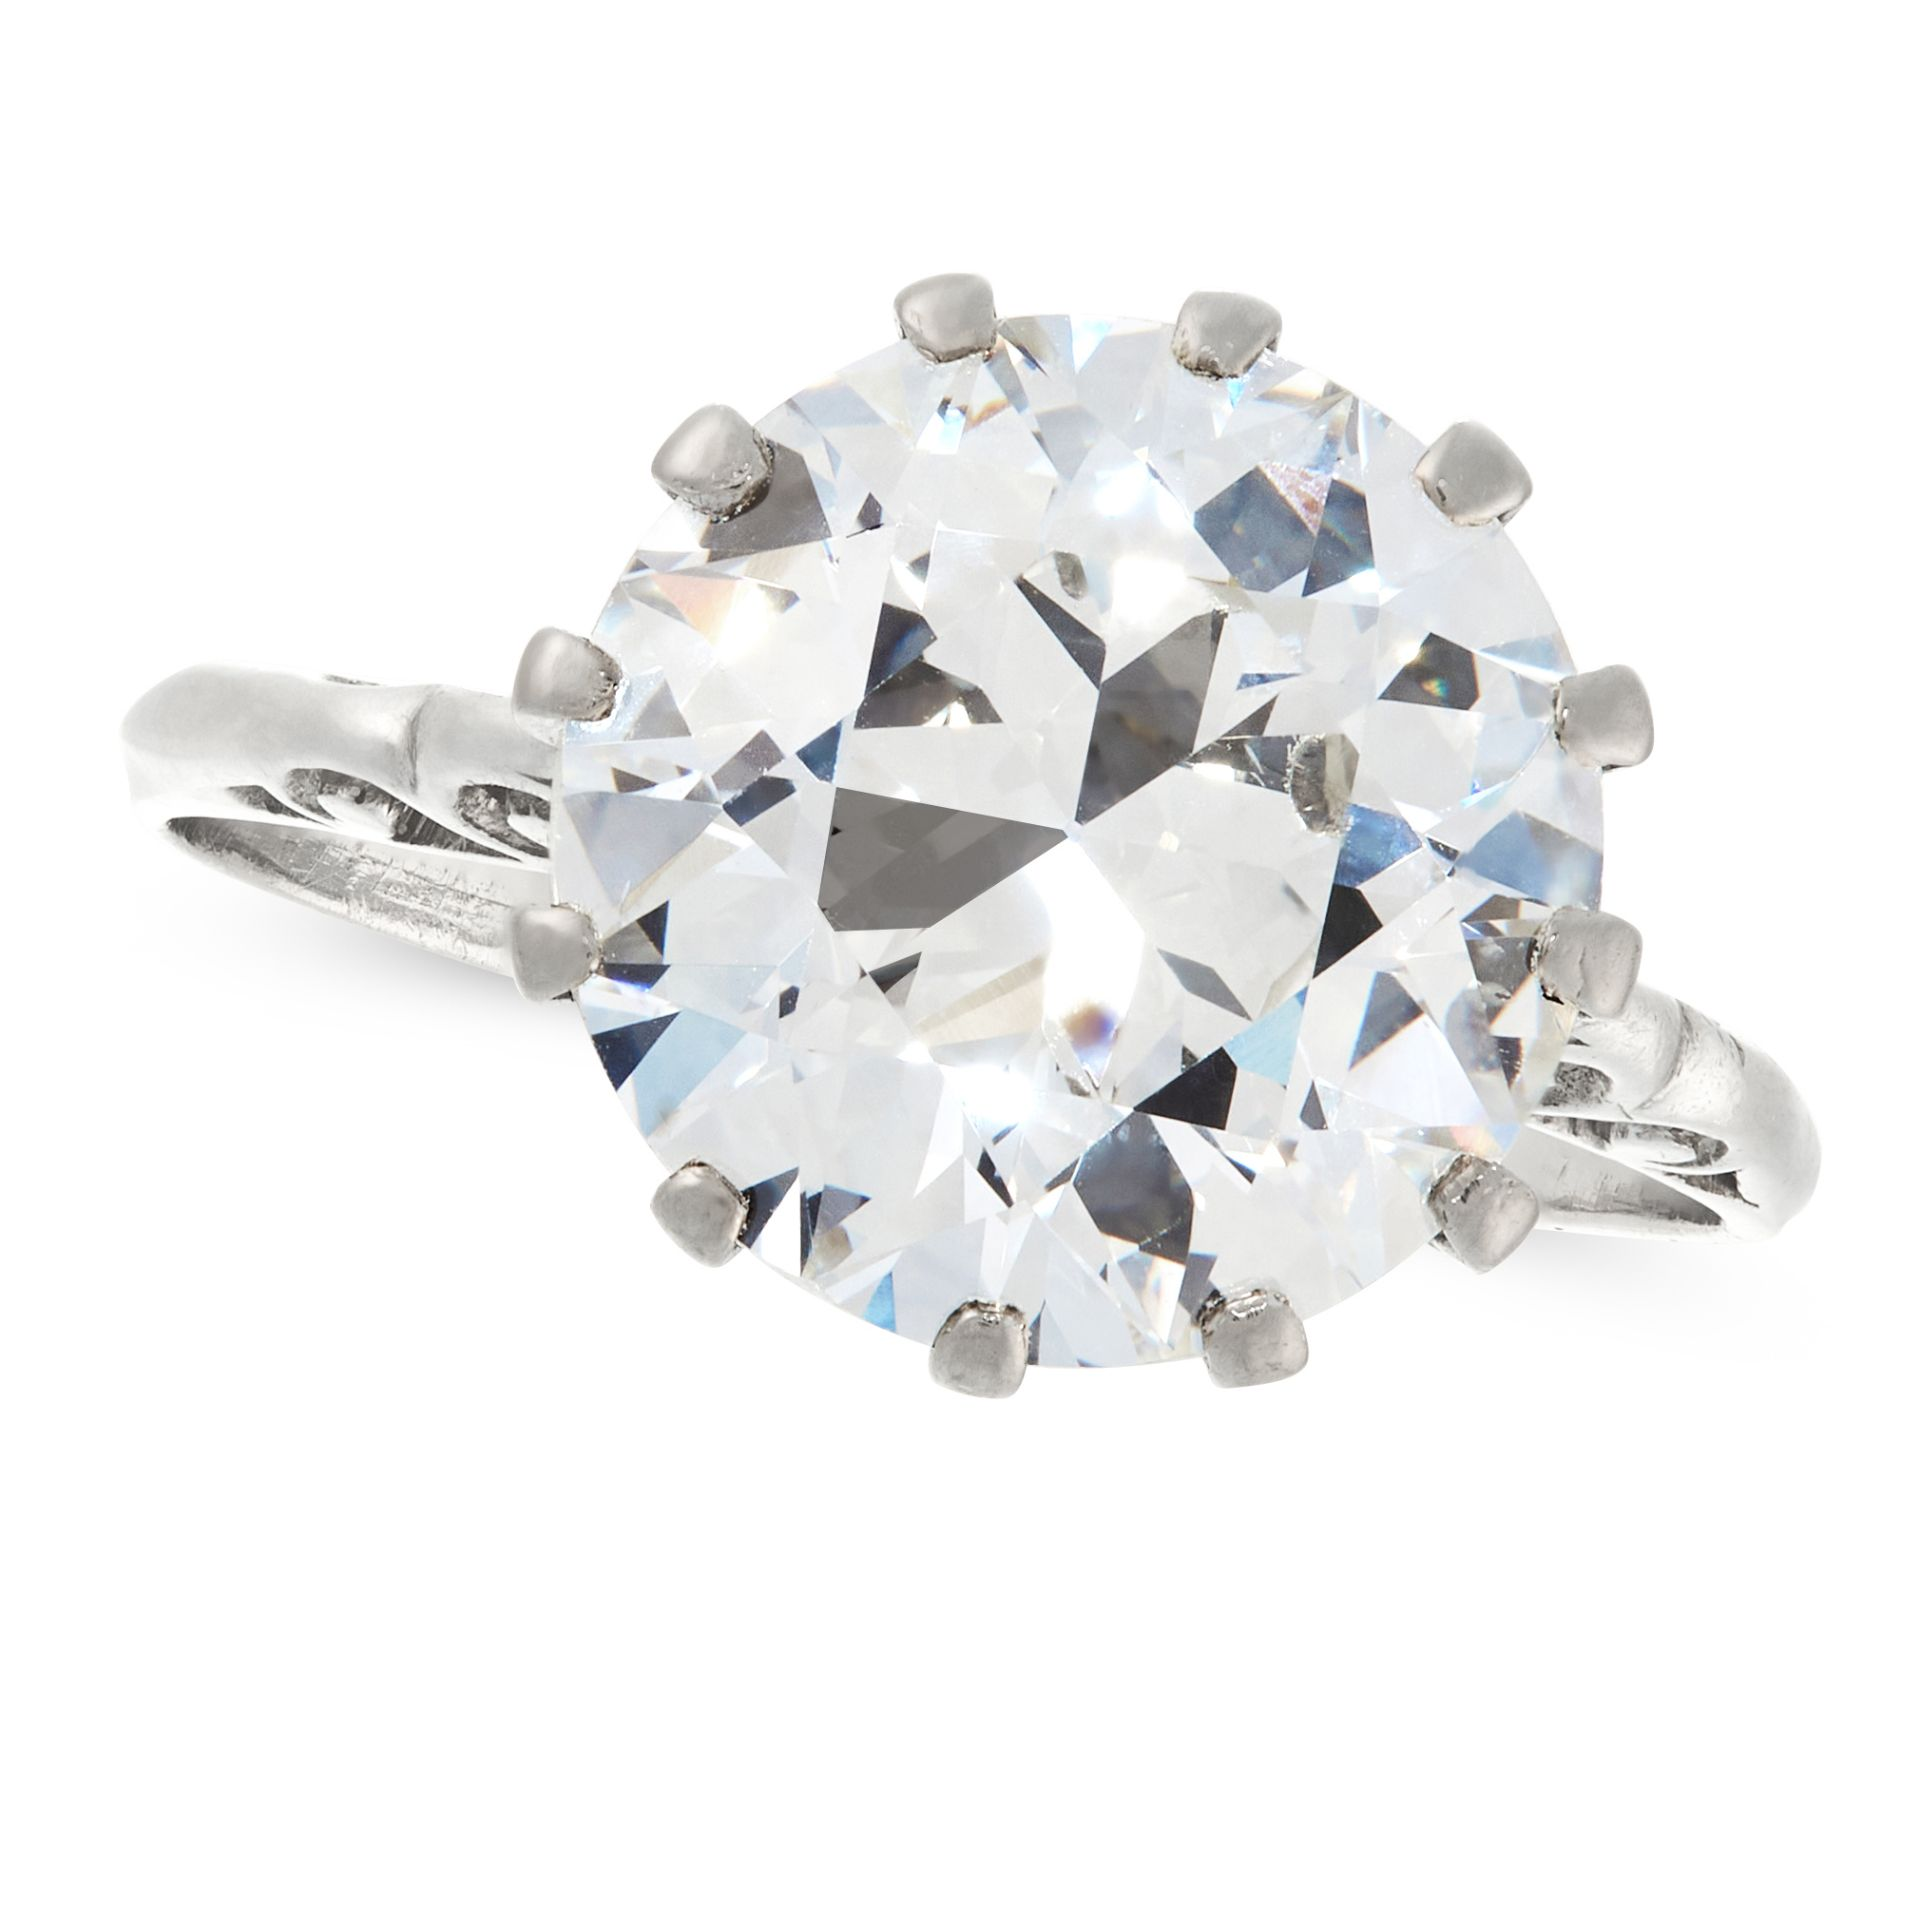 A 5.34 CARAT SOLITAIRE DIAMOND RING the old European cut diamond of 5.34 carats, claw set within a